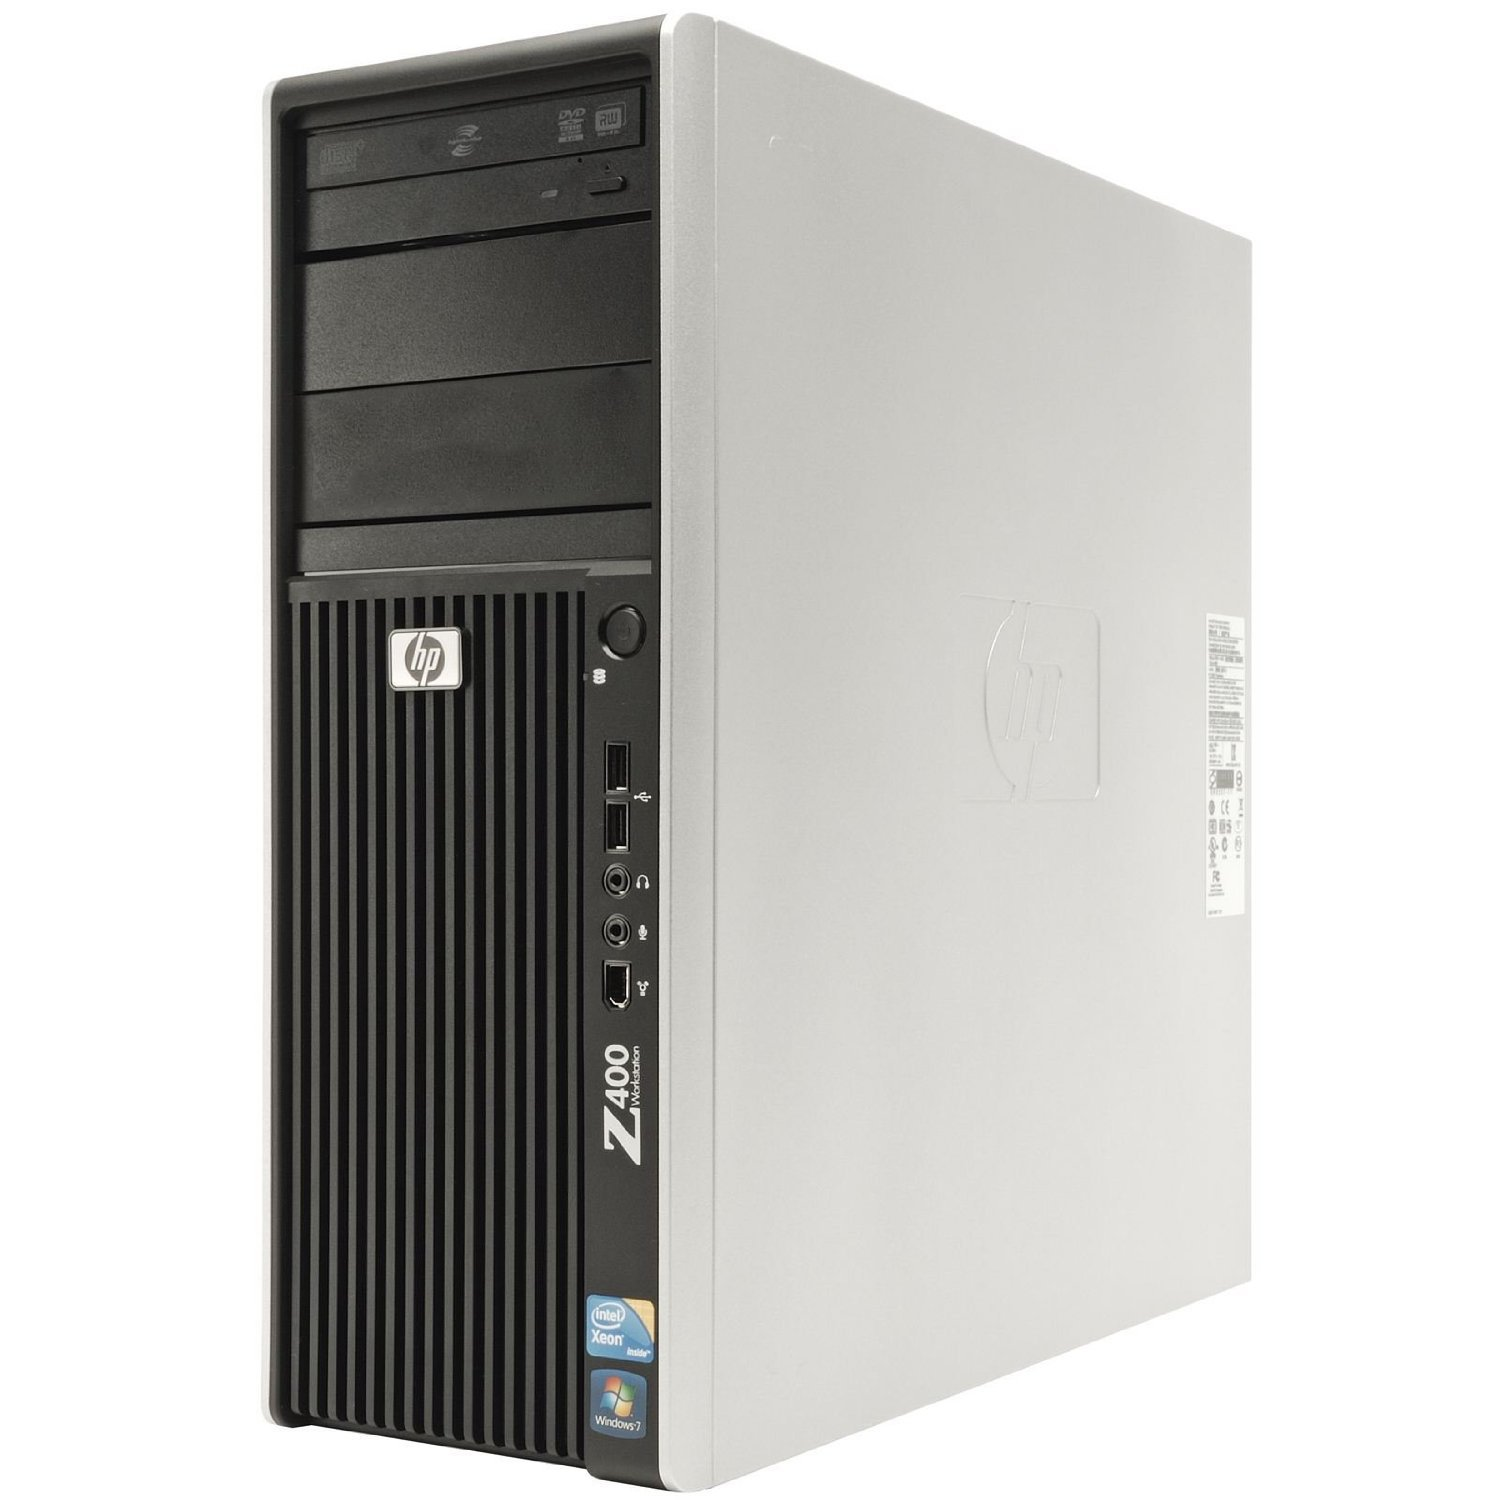 HP Z400 Workstation 6 CORE Computer -HP Z400 Workstation, Intel Xeon W3670  3 2GHz Six Core CPU, 24GB Ram, New 250 SSD + New 2TB HDD, Nvidia Quadro